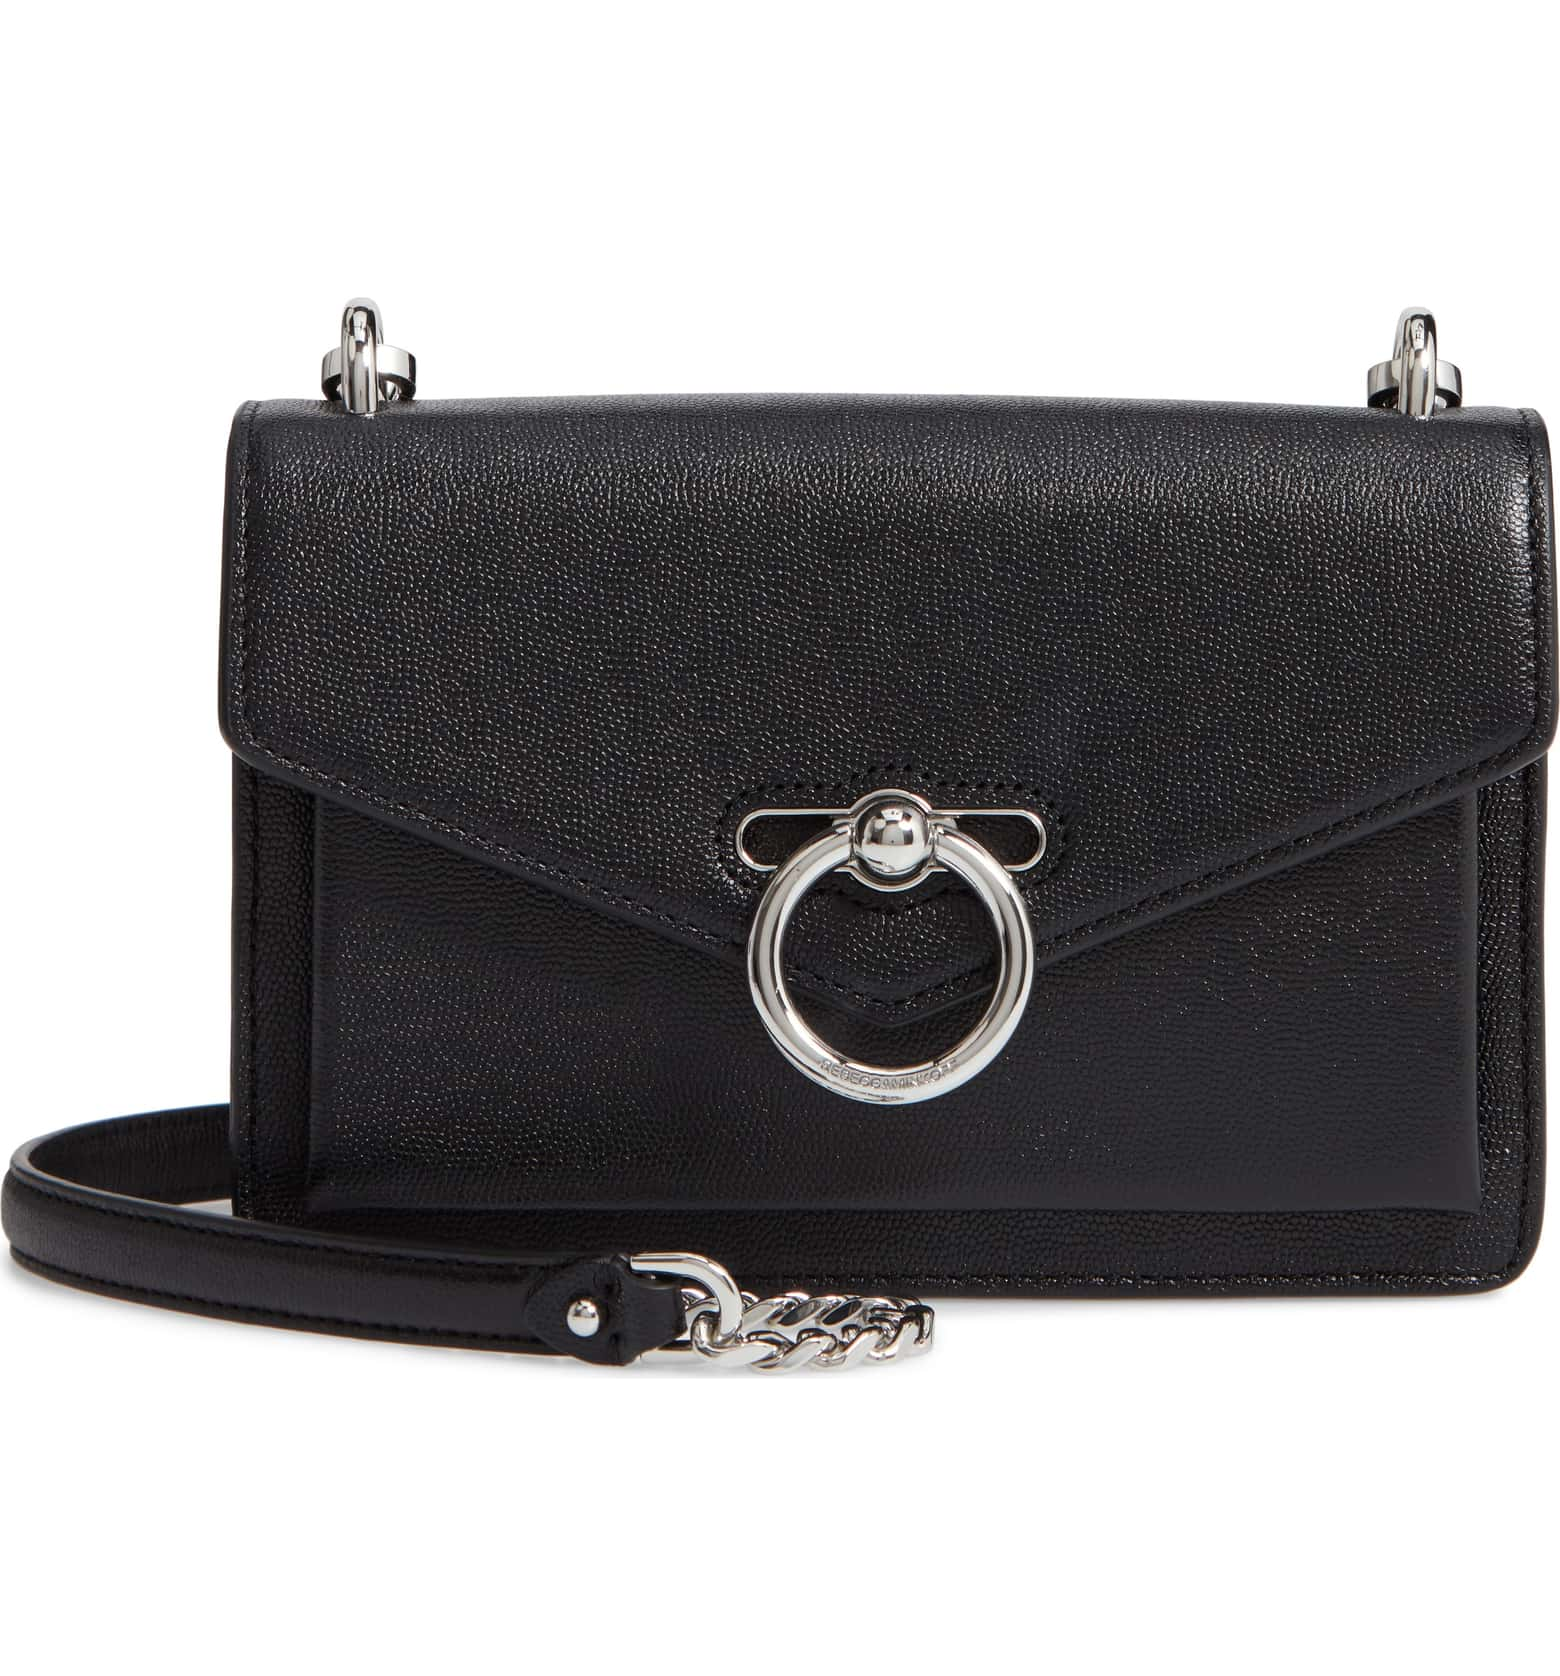 Rebecca Minkoff Black Leather Jean Crossbody Bag